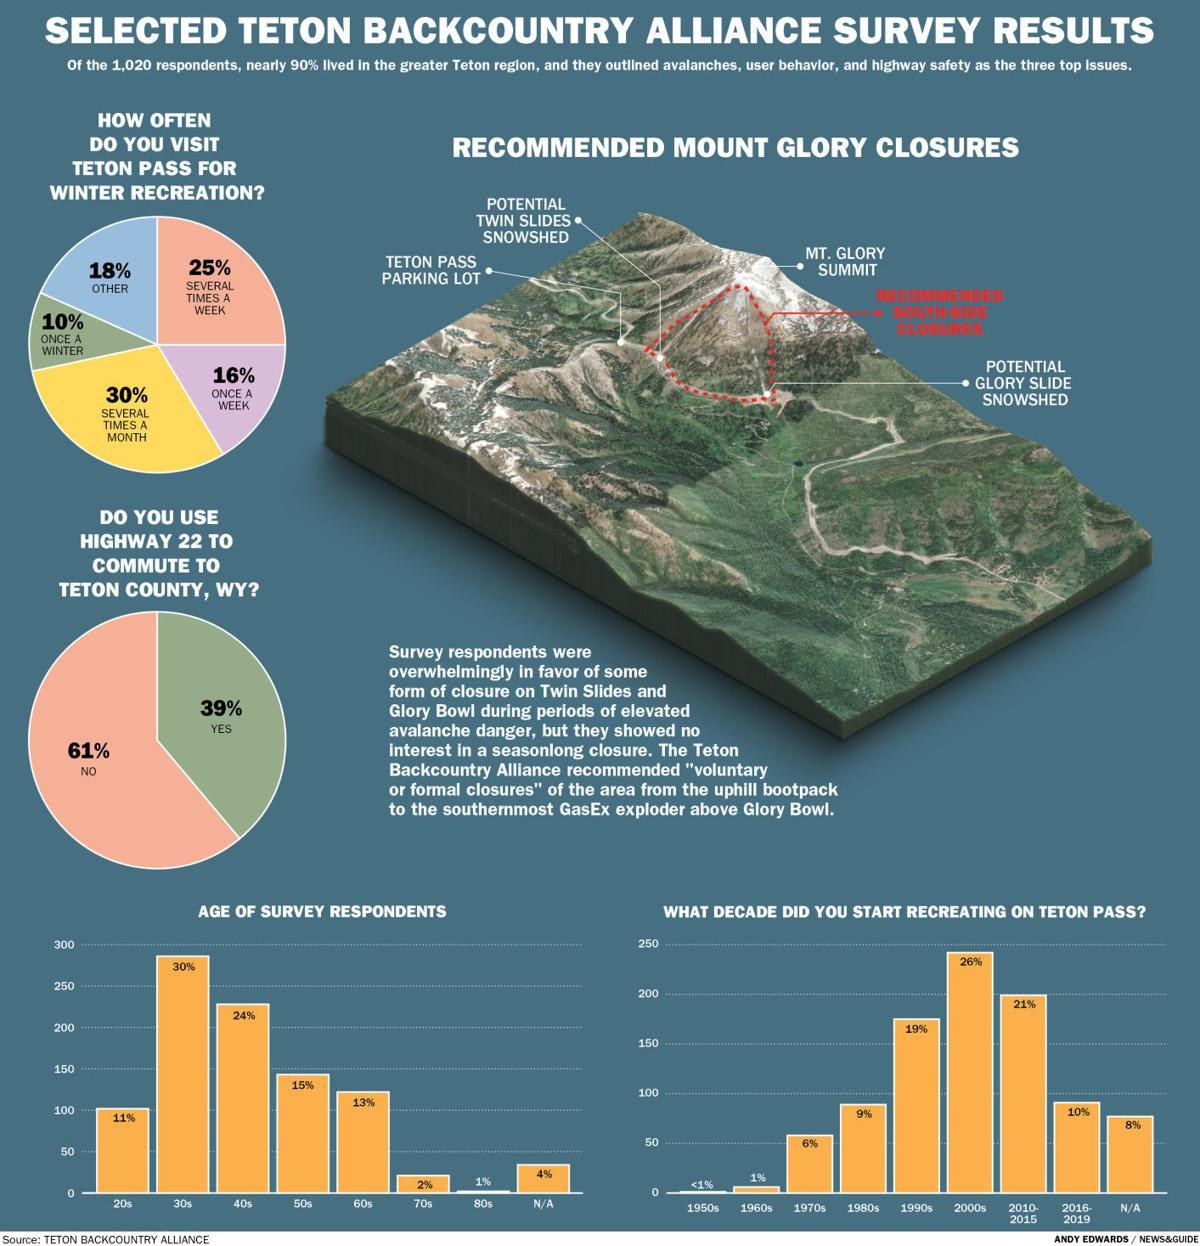 Selected Teton Backcountry Alliance Survey Results